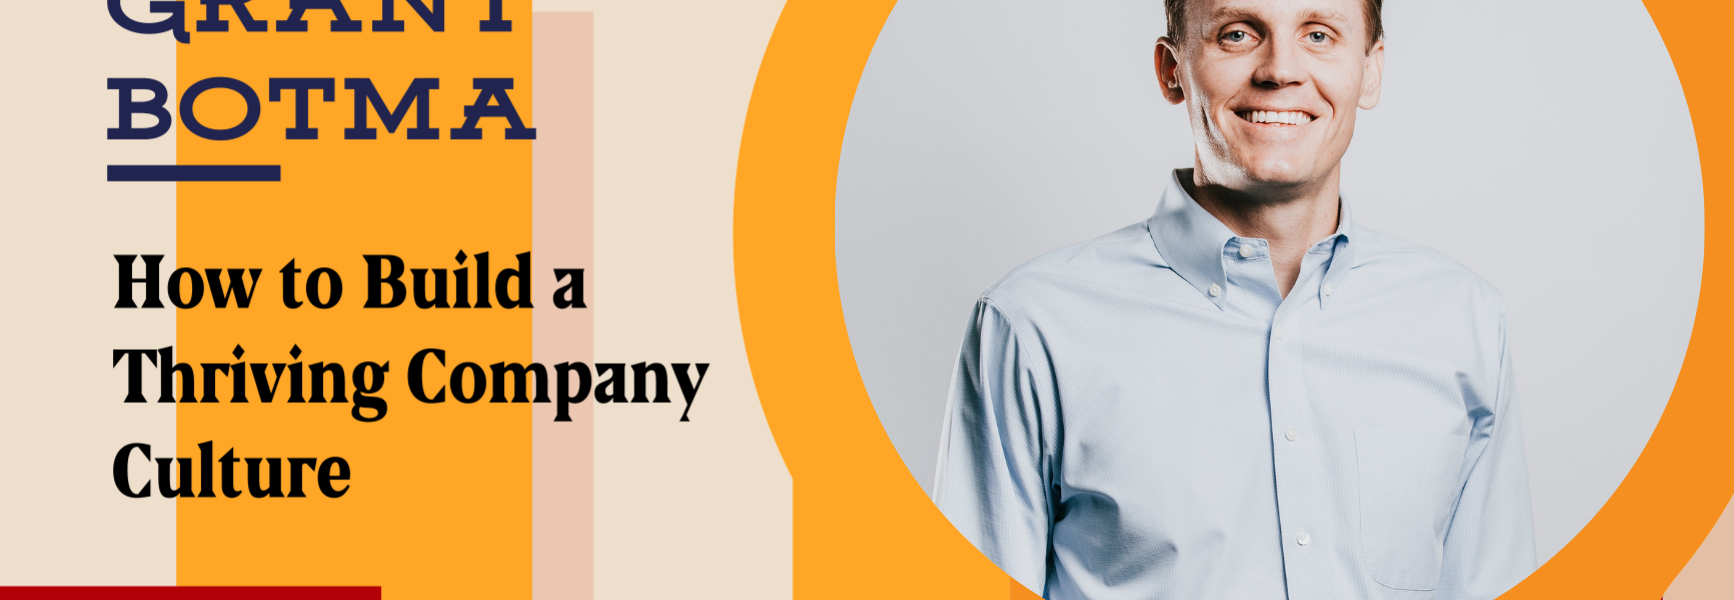 Episode 100: How to Build a Thriving Company Culture with Grant Botma